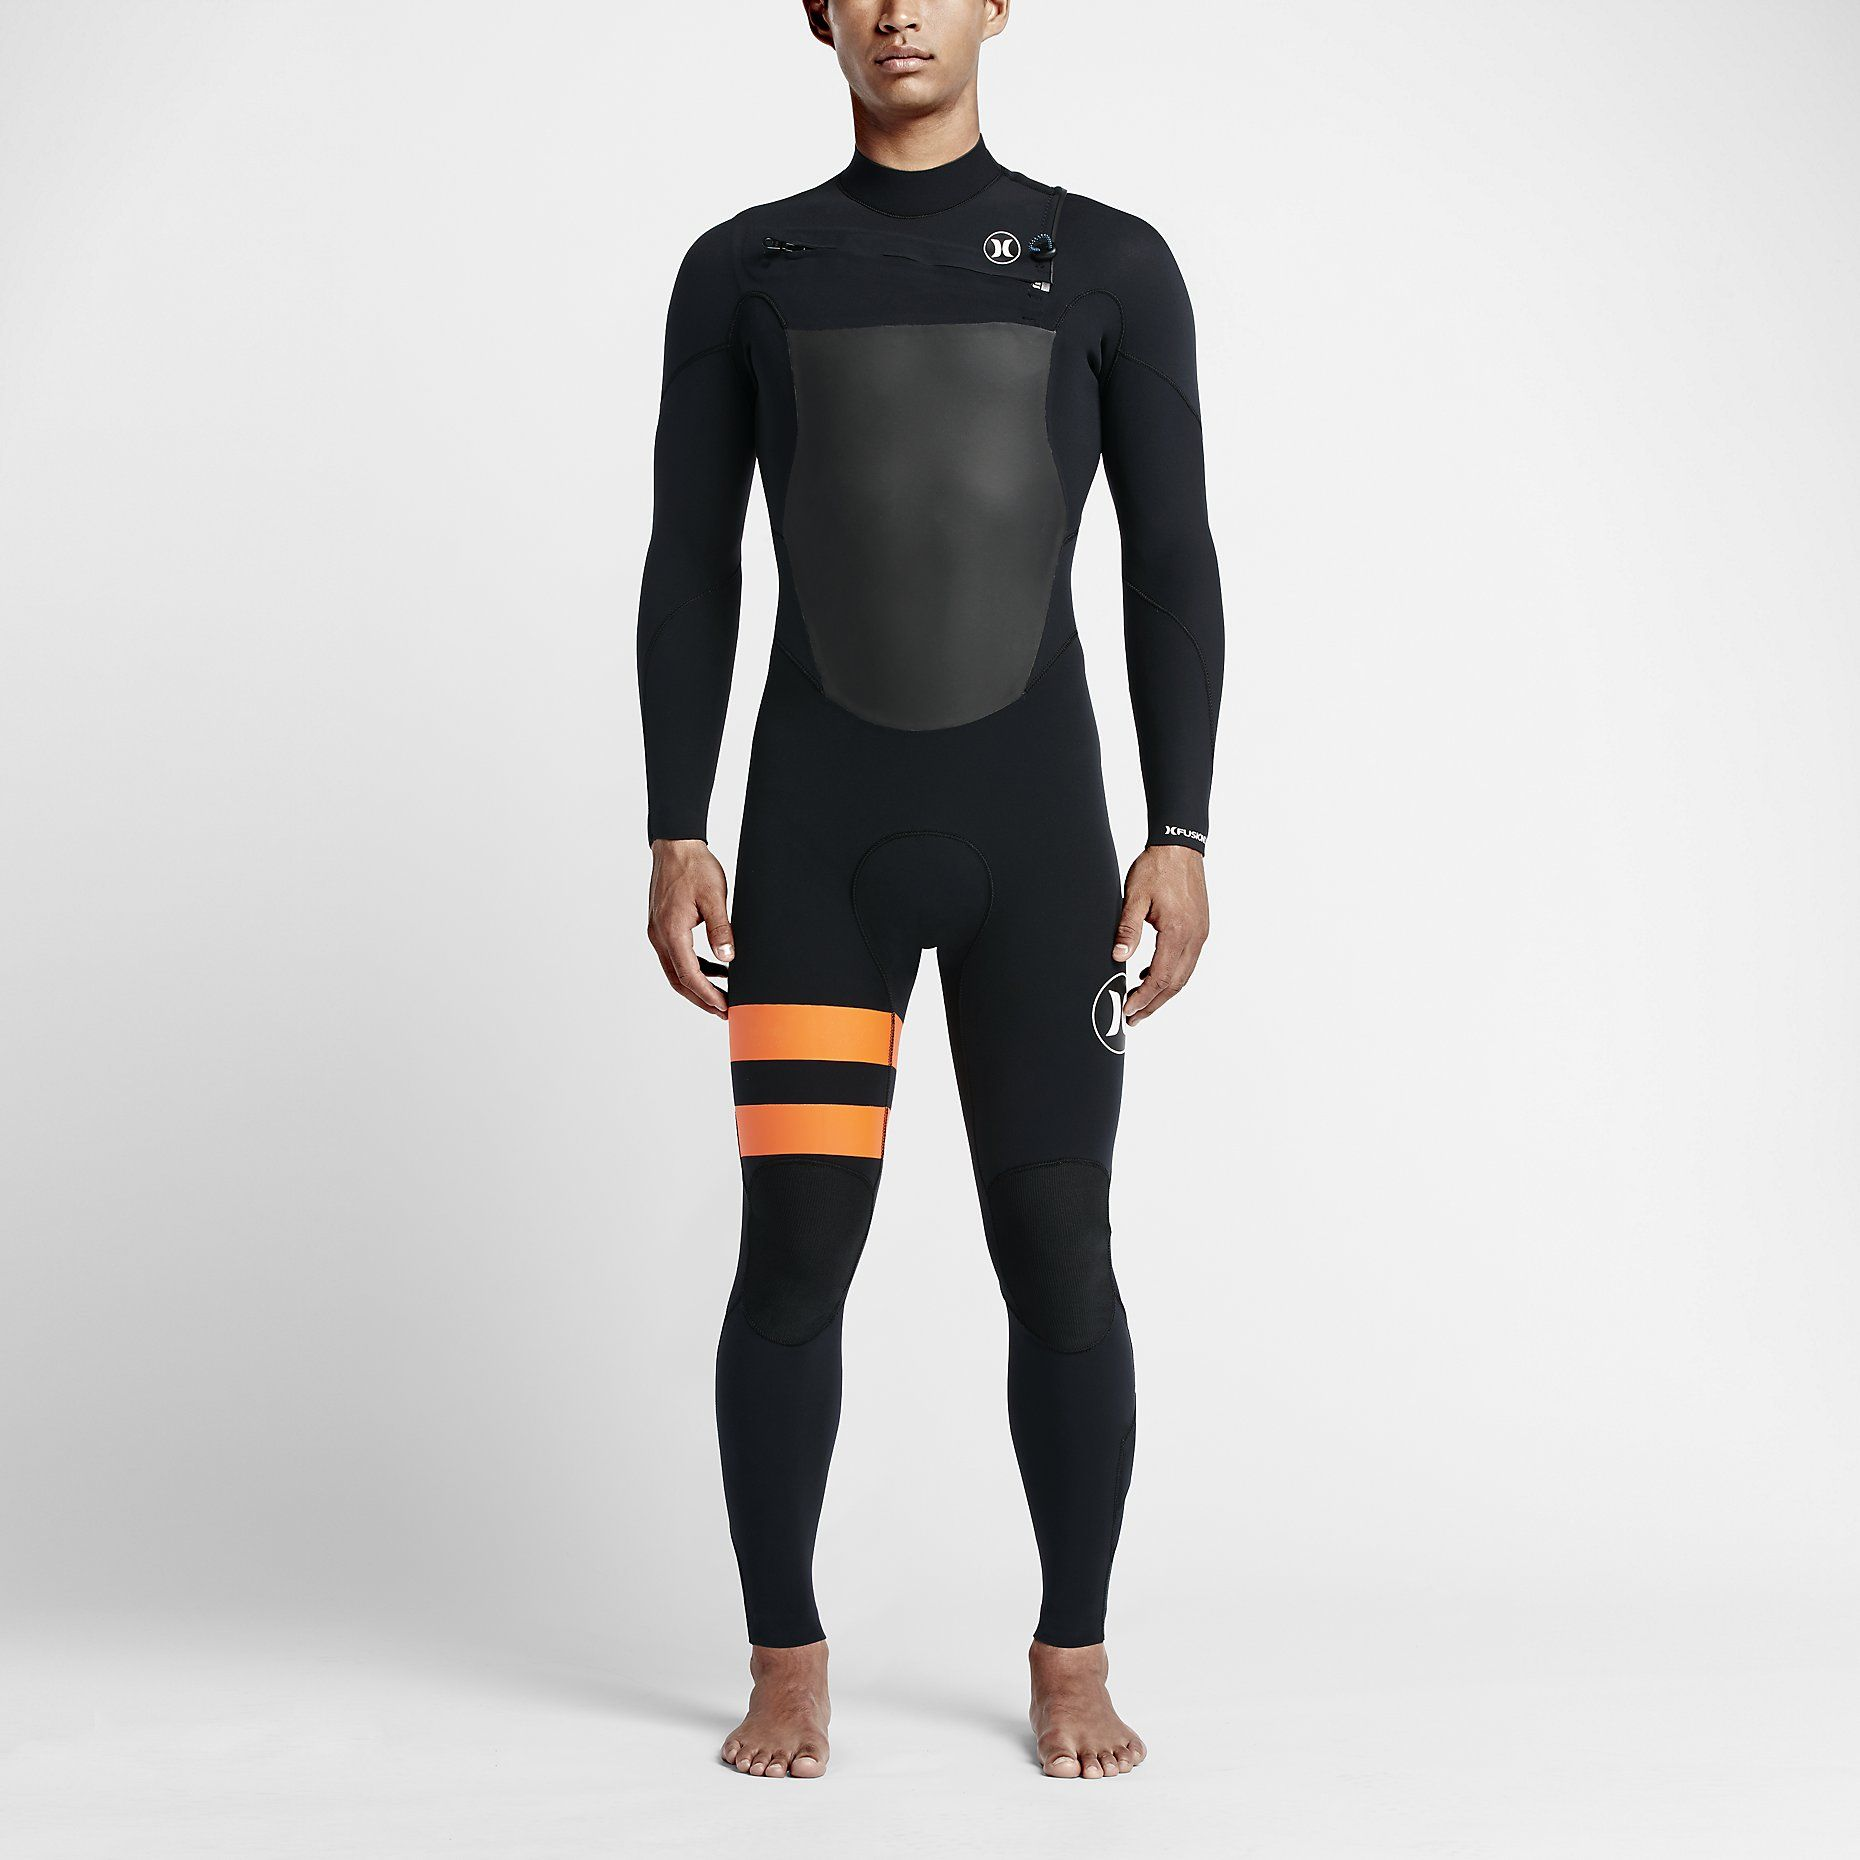 Hurley Fusion 403 Fullsuit Men S Wetsuit Nike Store Surfbekleidung Adrette Outfits Tauchanzug